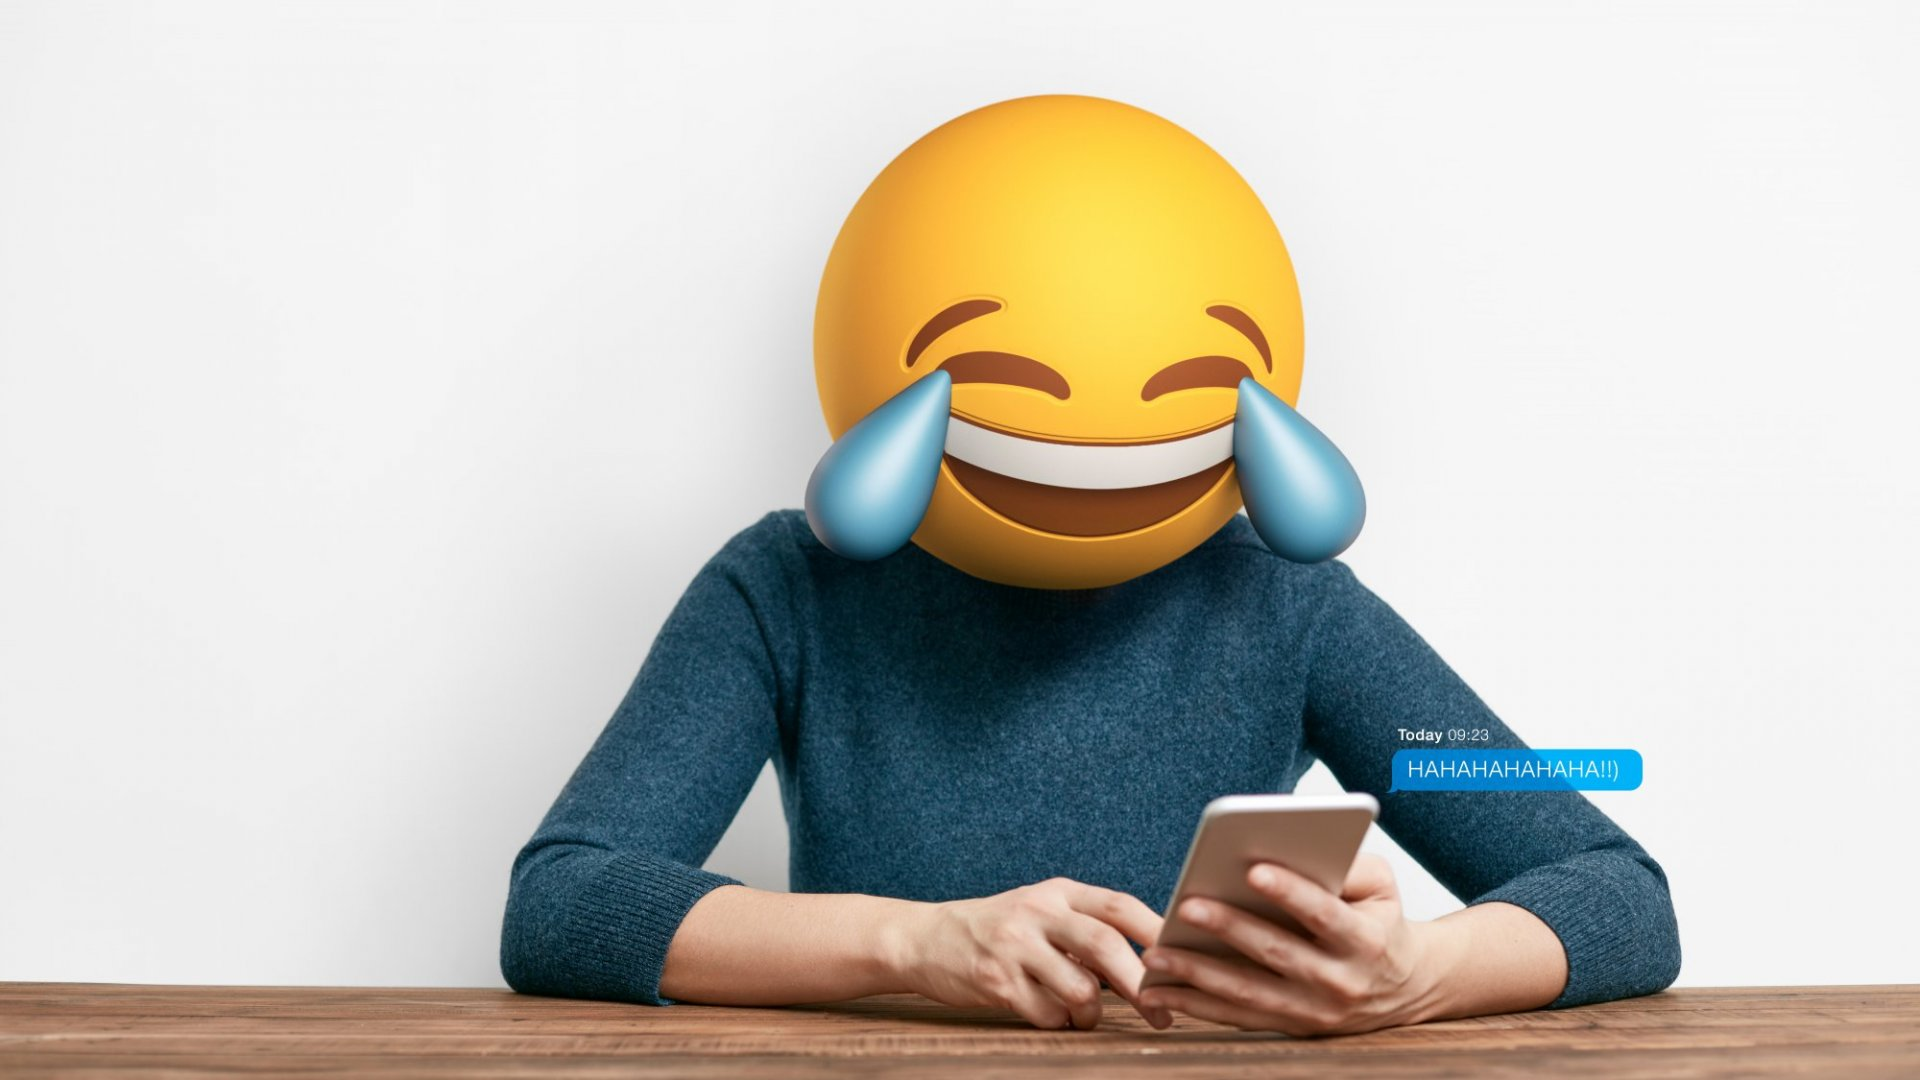 How to Use Emojis Effectively in Everyday Business Communications